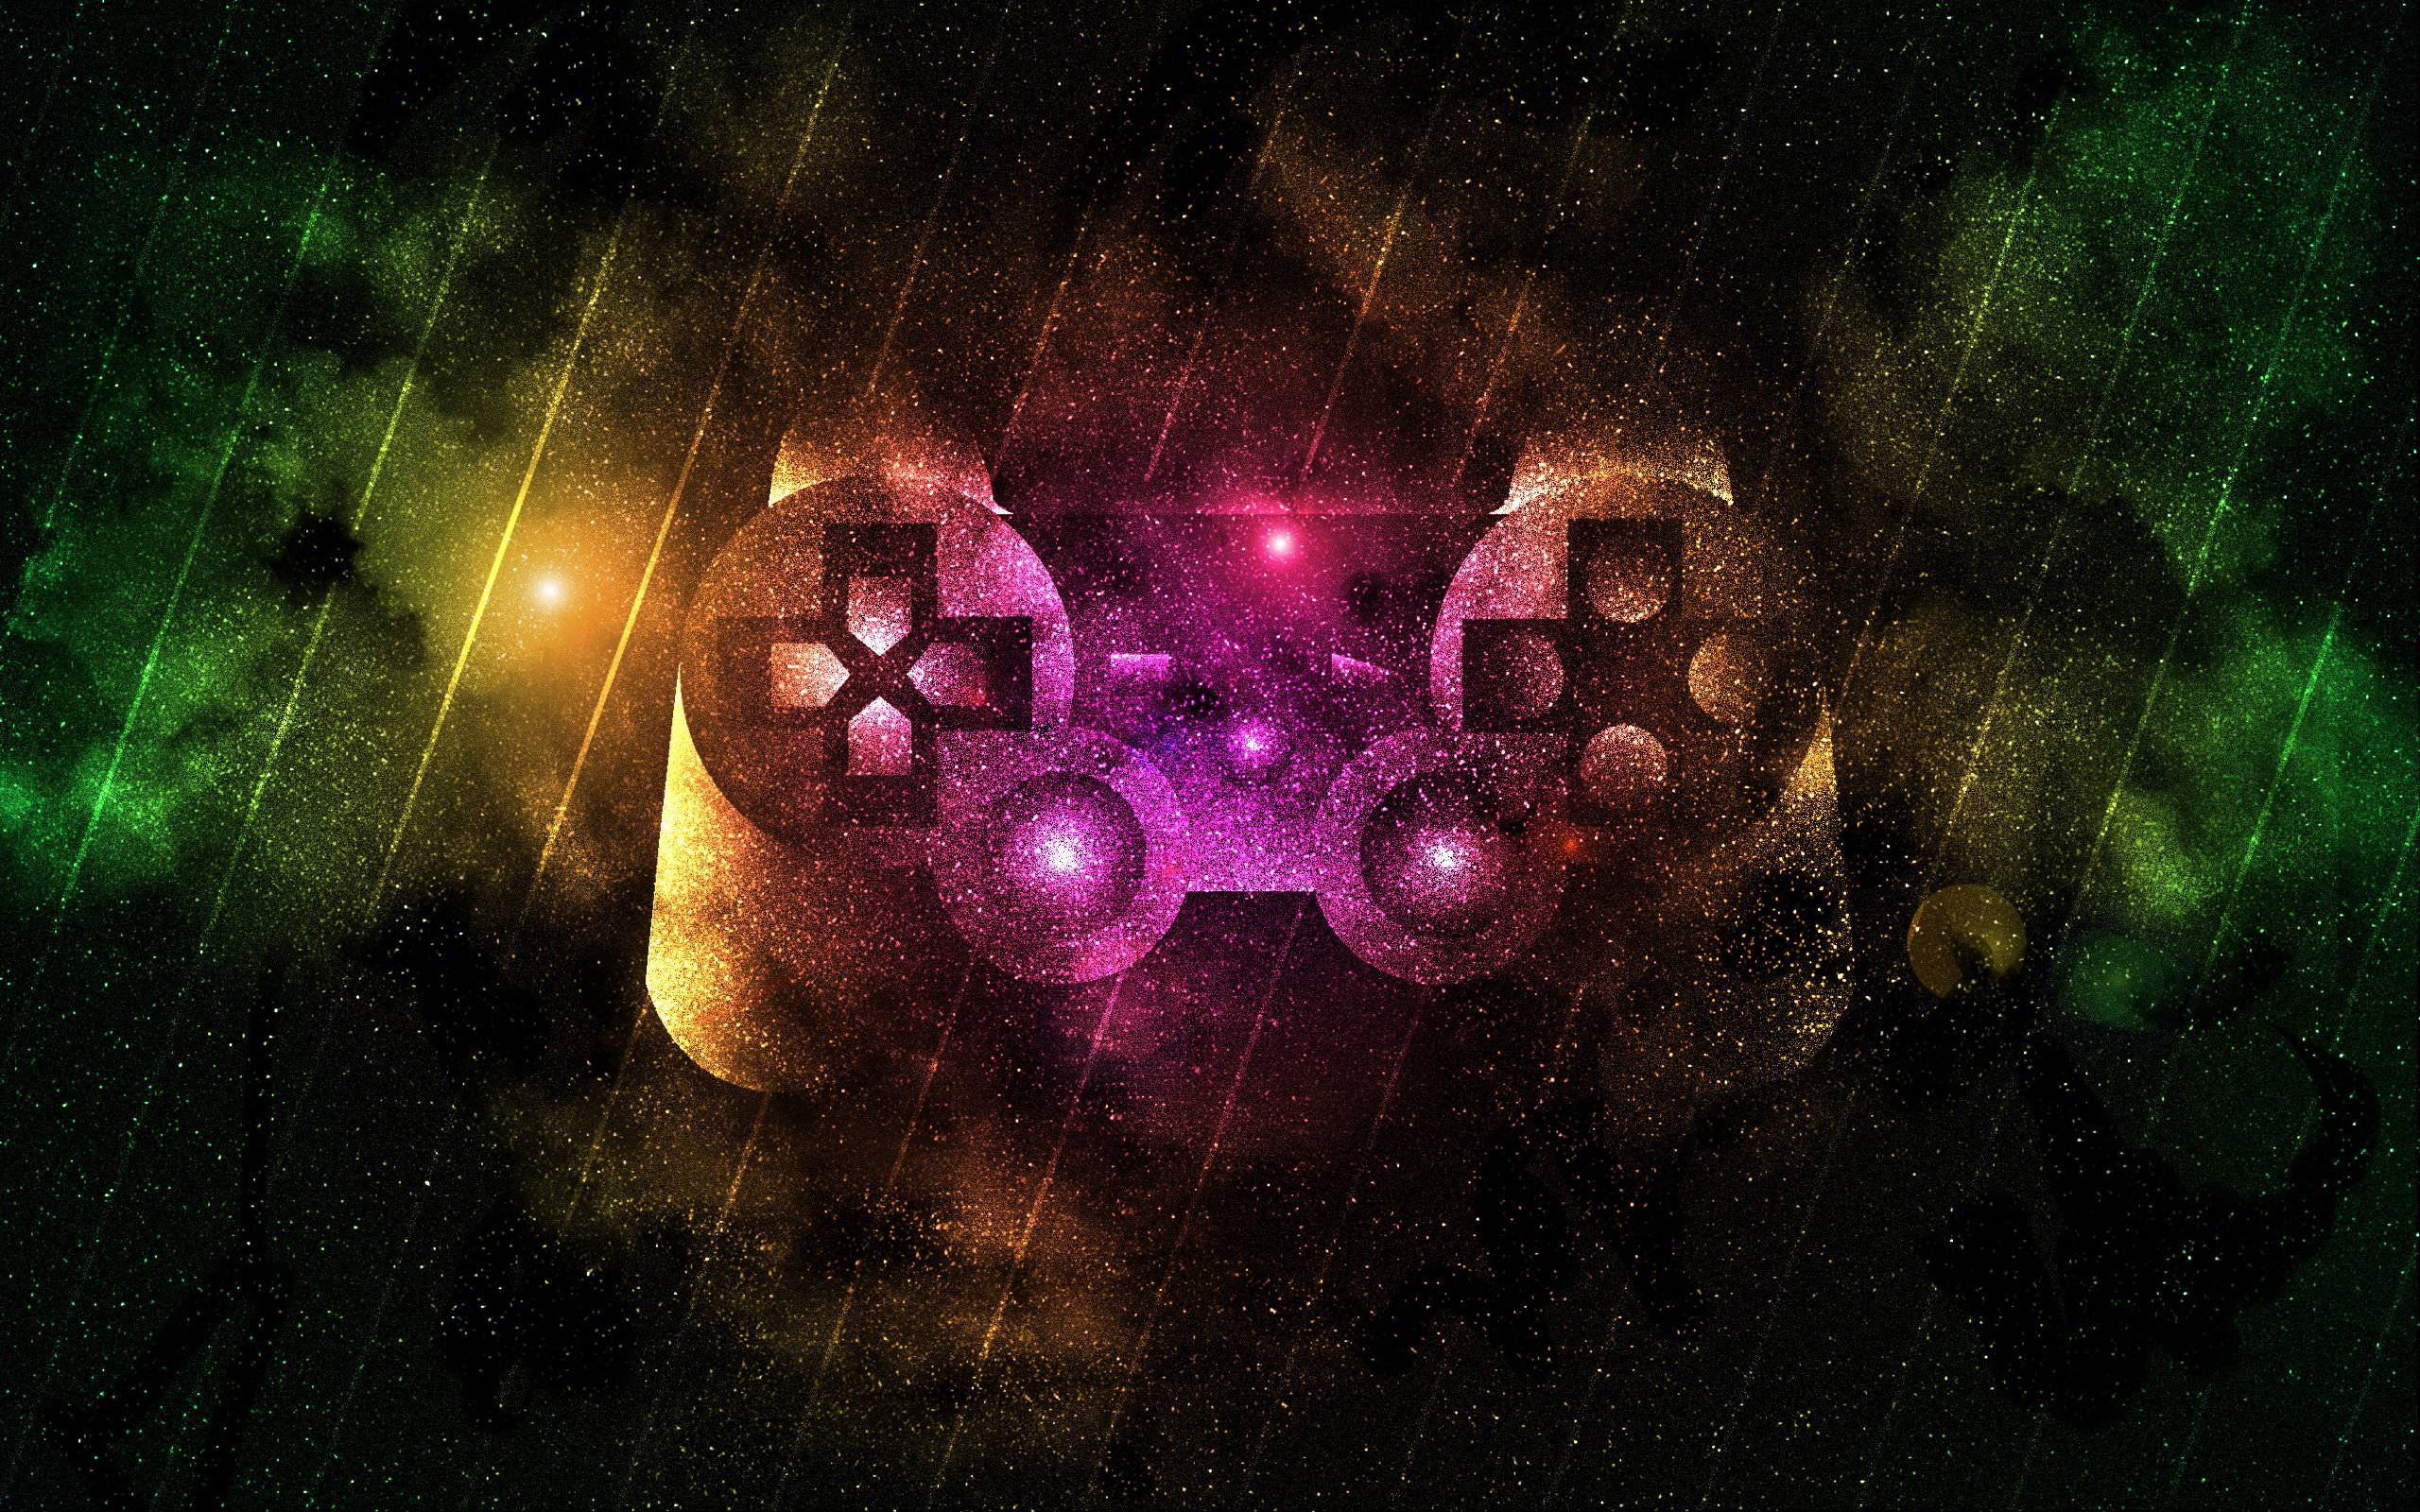 Controller wallpapers HD for desktop backgrounds